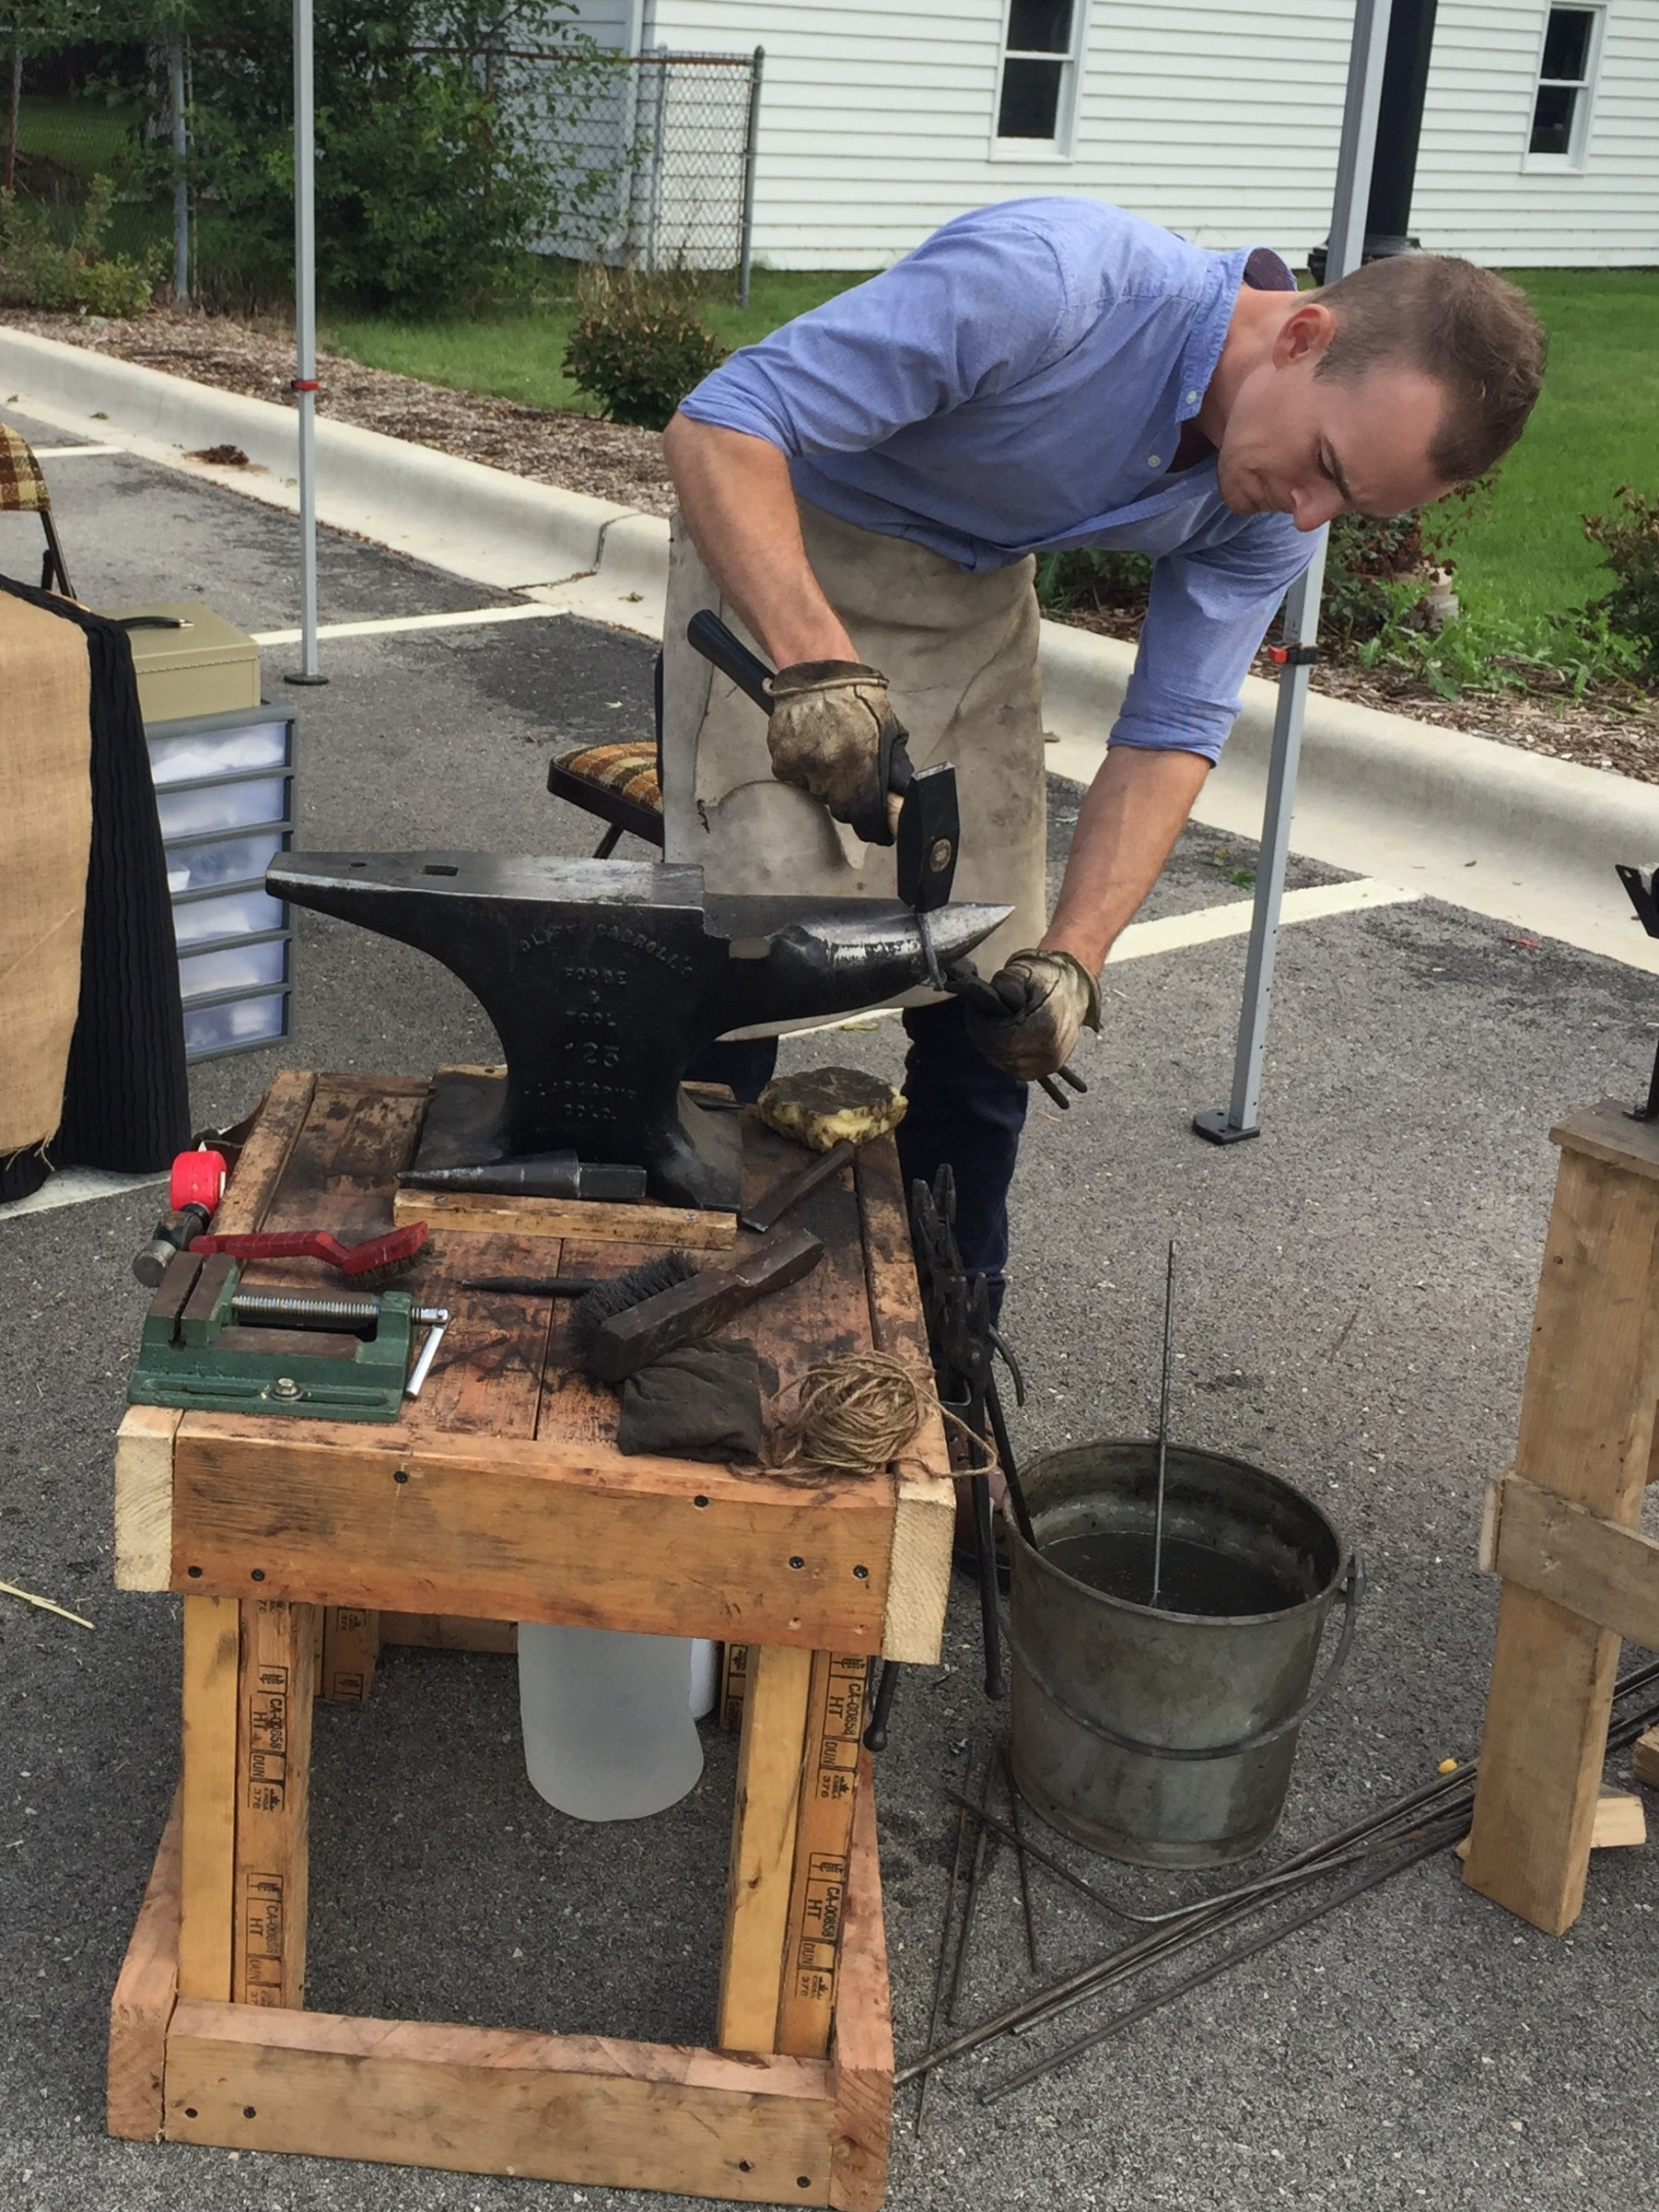 Justin demonstrating his craft at a recent craft fair in Plainfield.